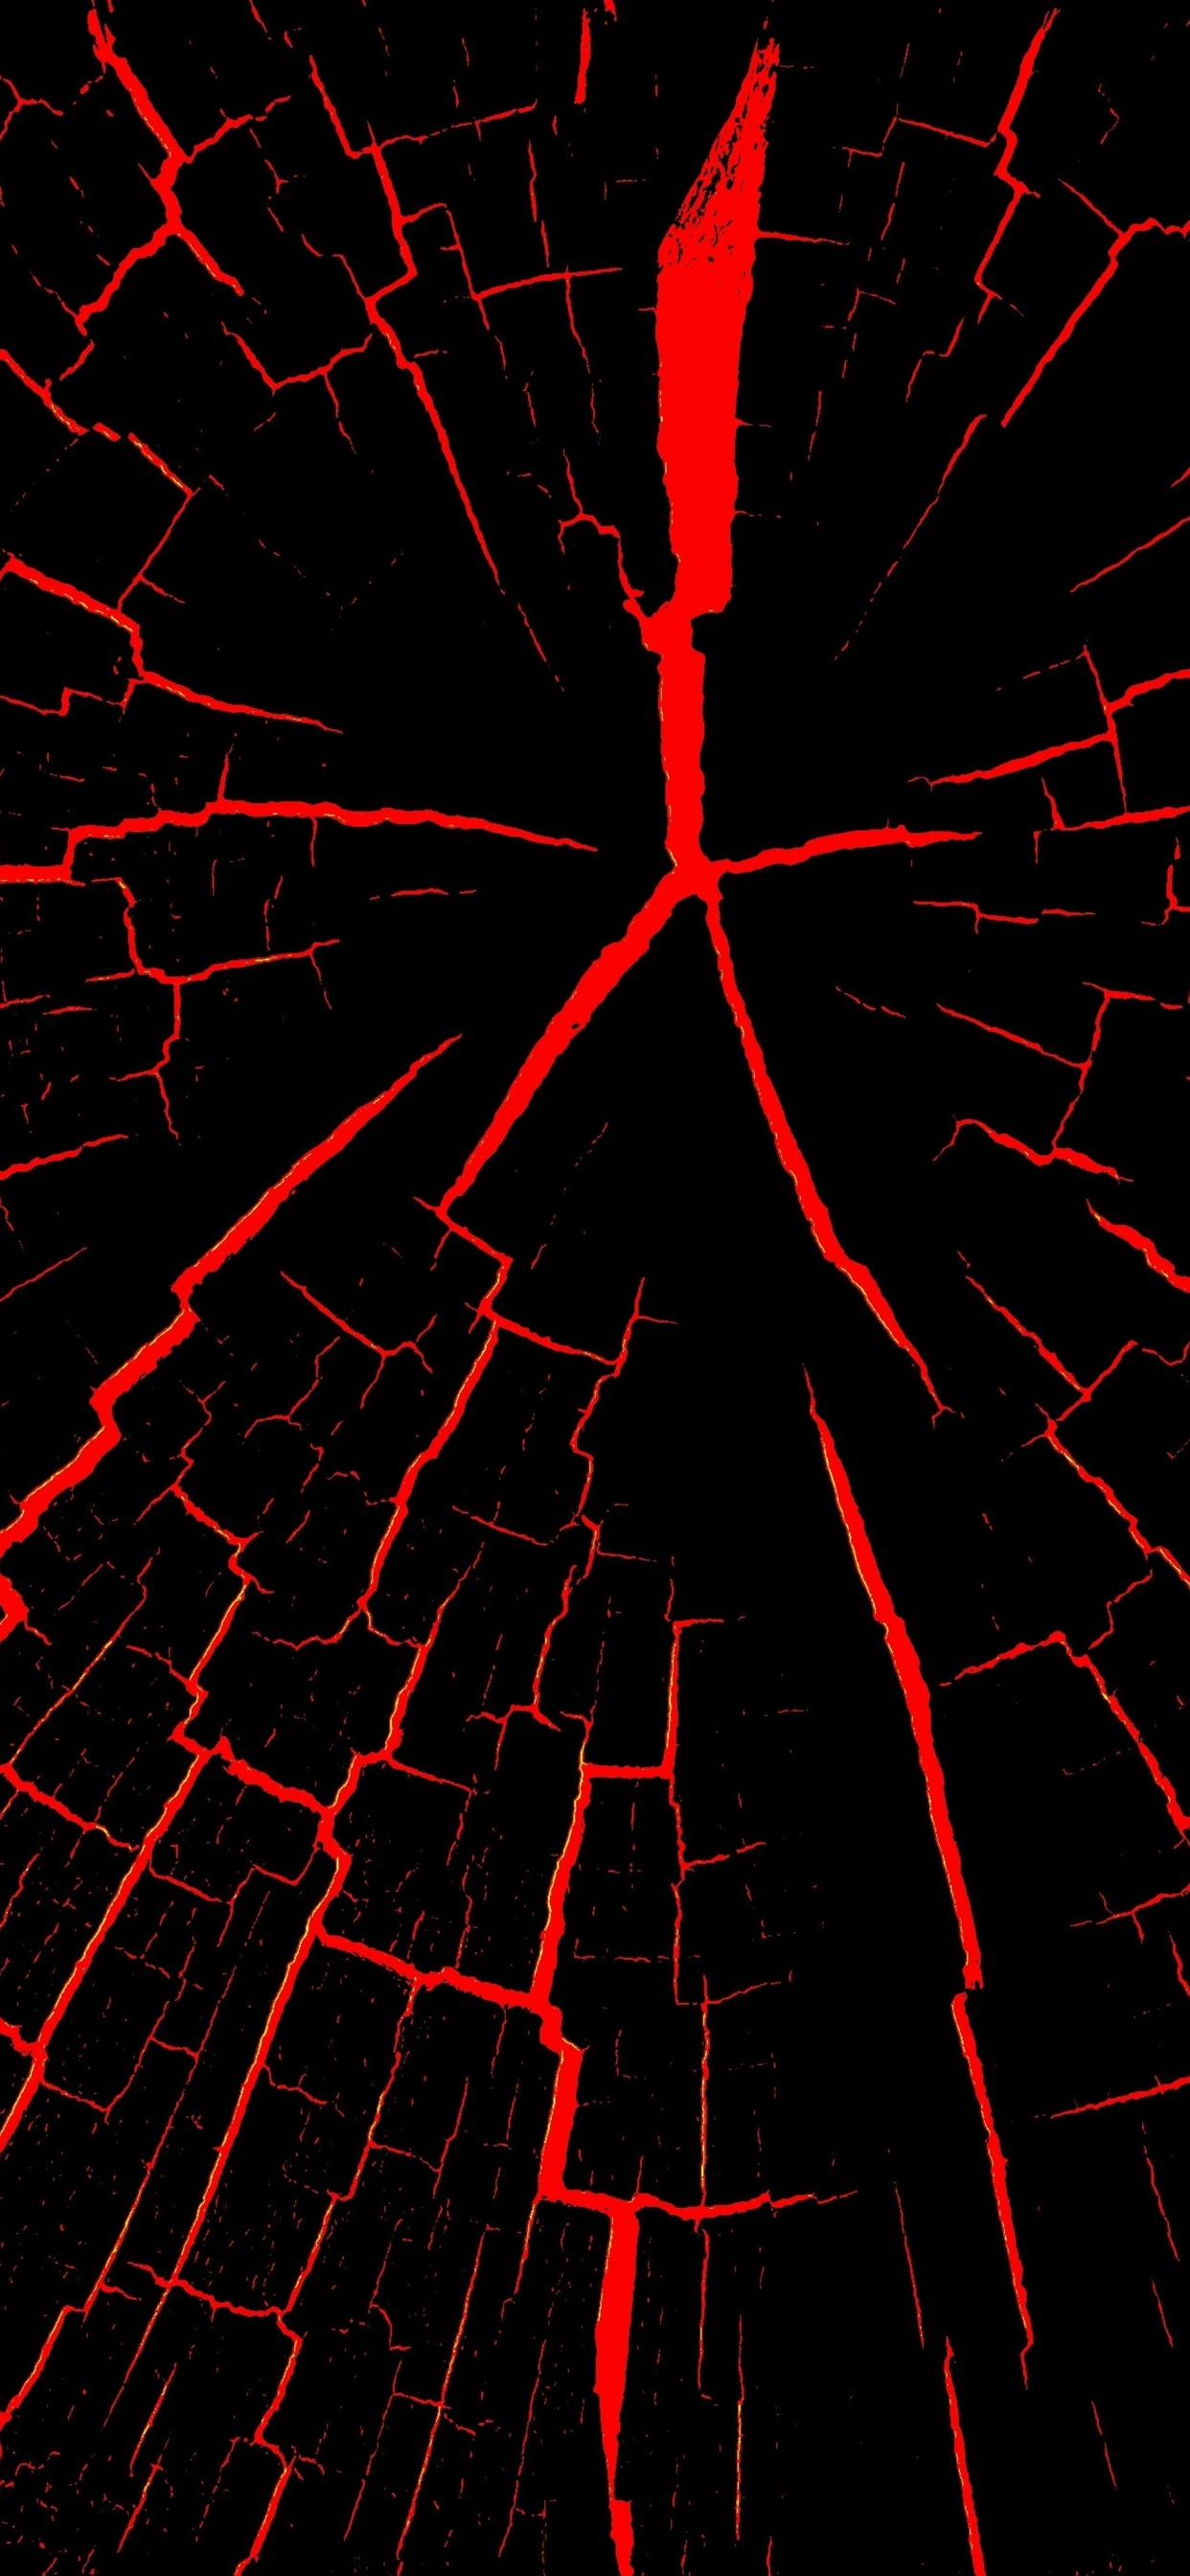 Cracks Black And Red Abstract 1242x2688 Iphone 11 Pro Xs Max